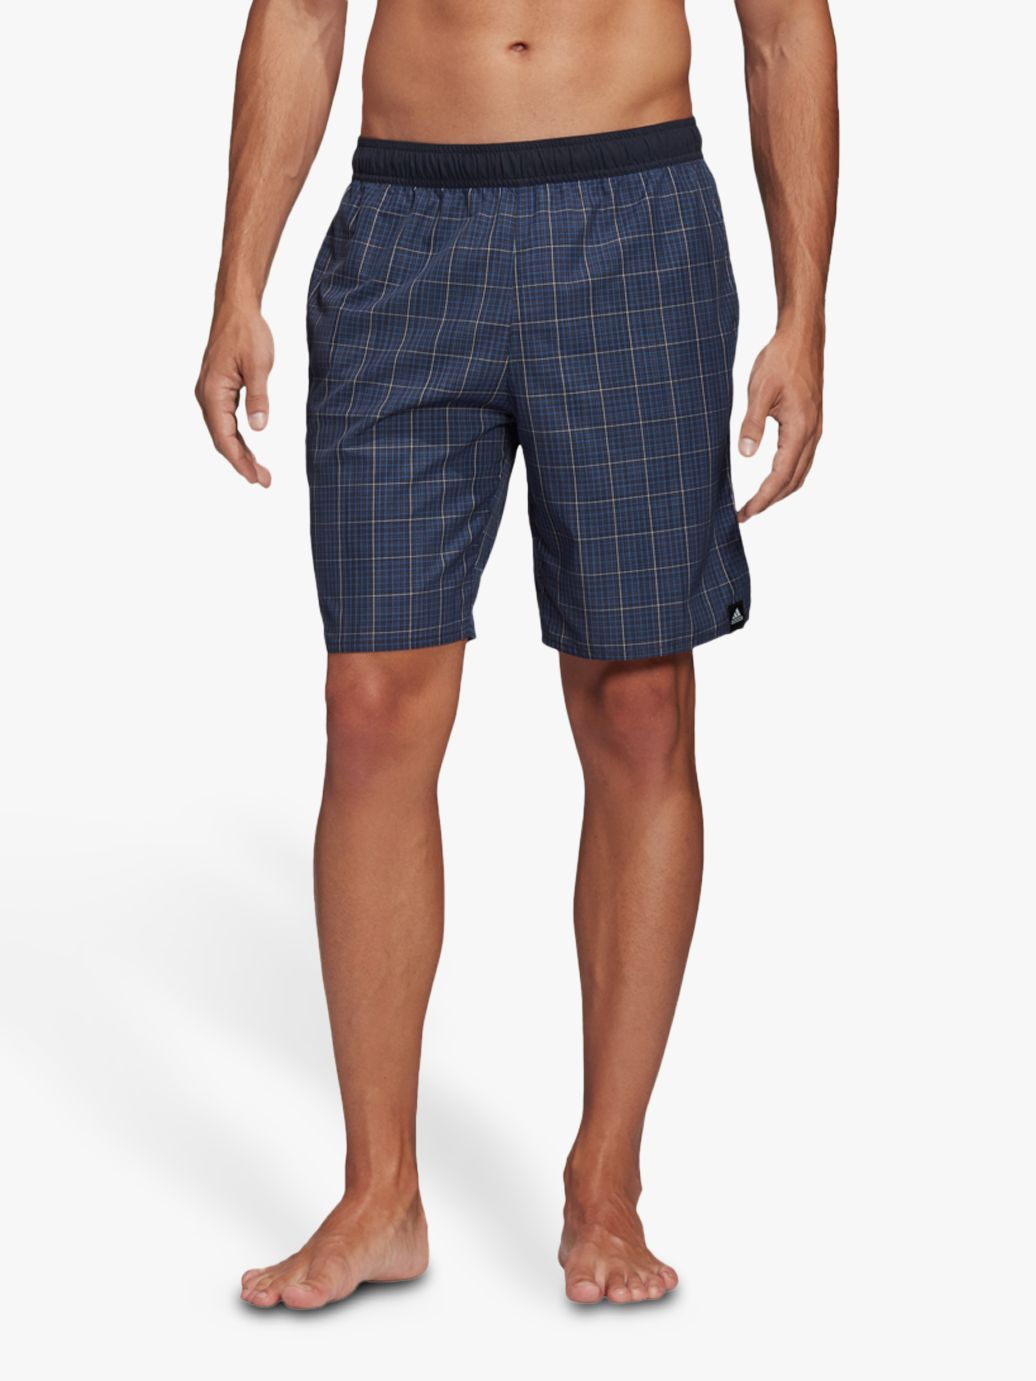 Adidas adidas Check CLX Swim Shorts, Legend Ink